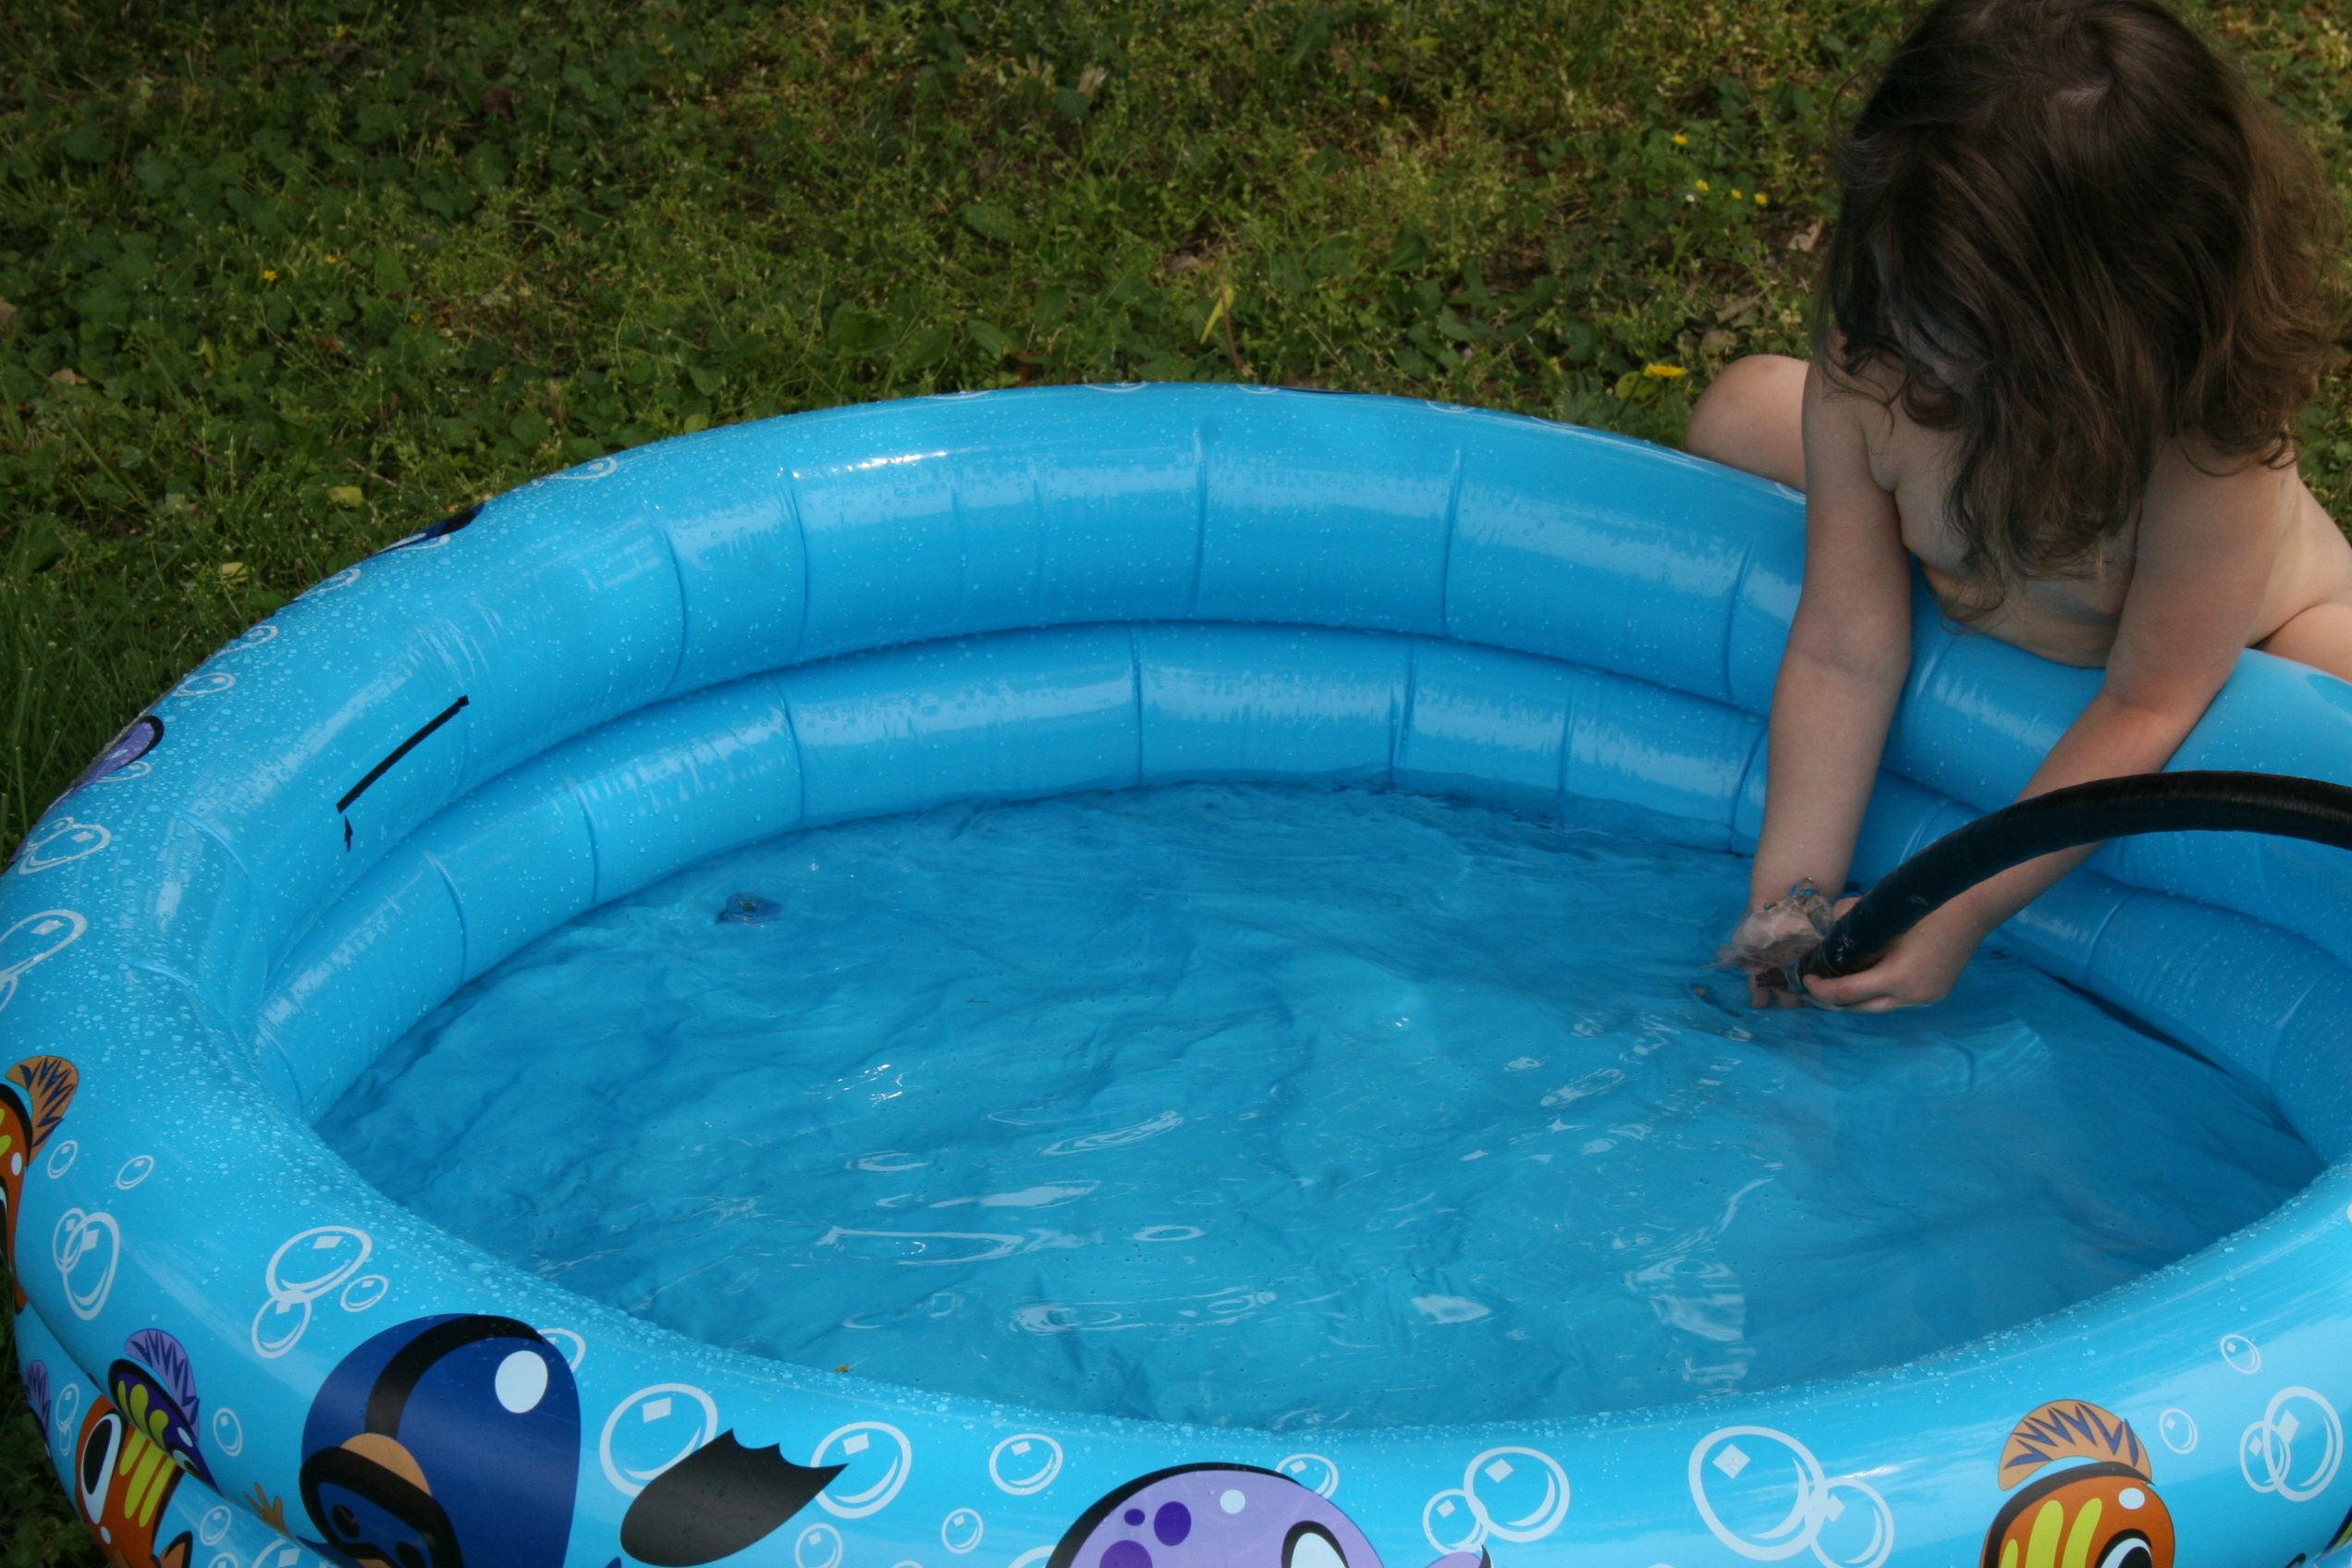 nudism swimmingpool $1.49 at the end of summer last year. Worth every penny!